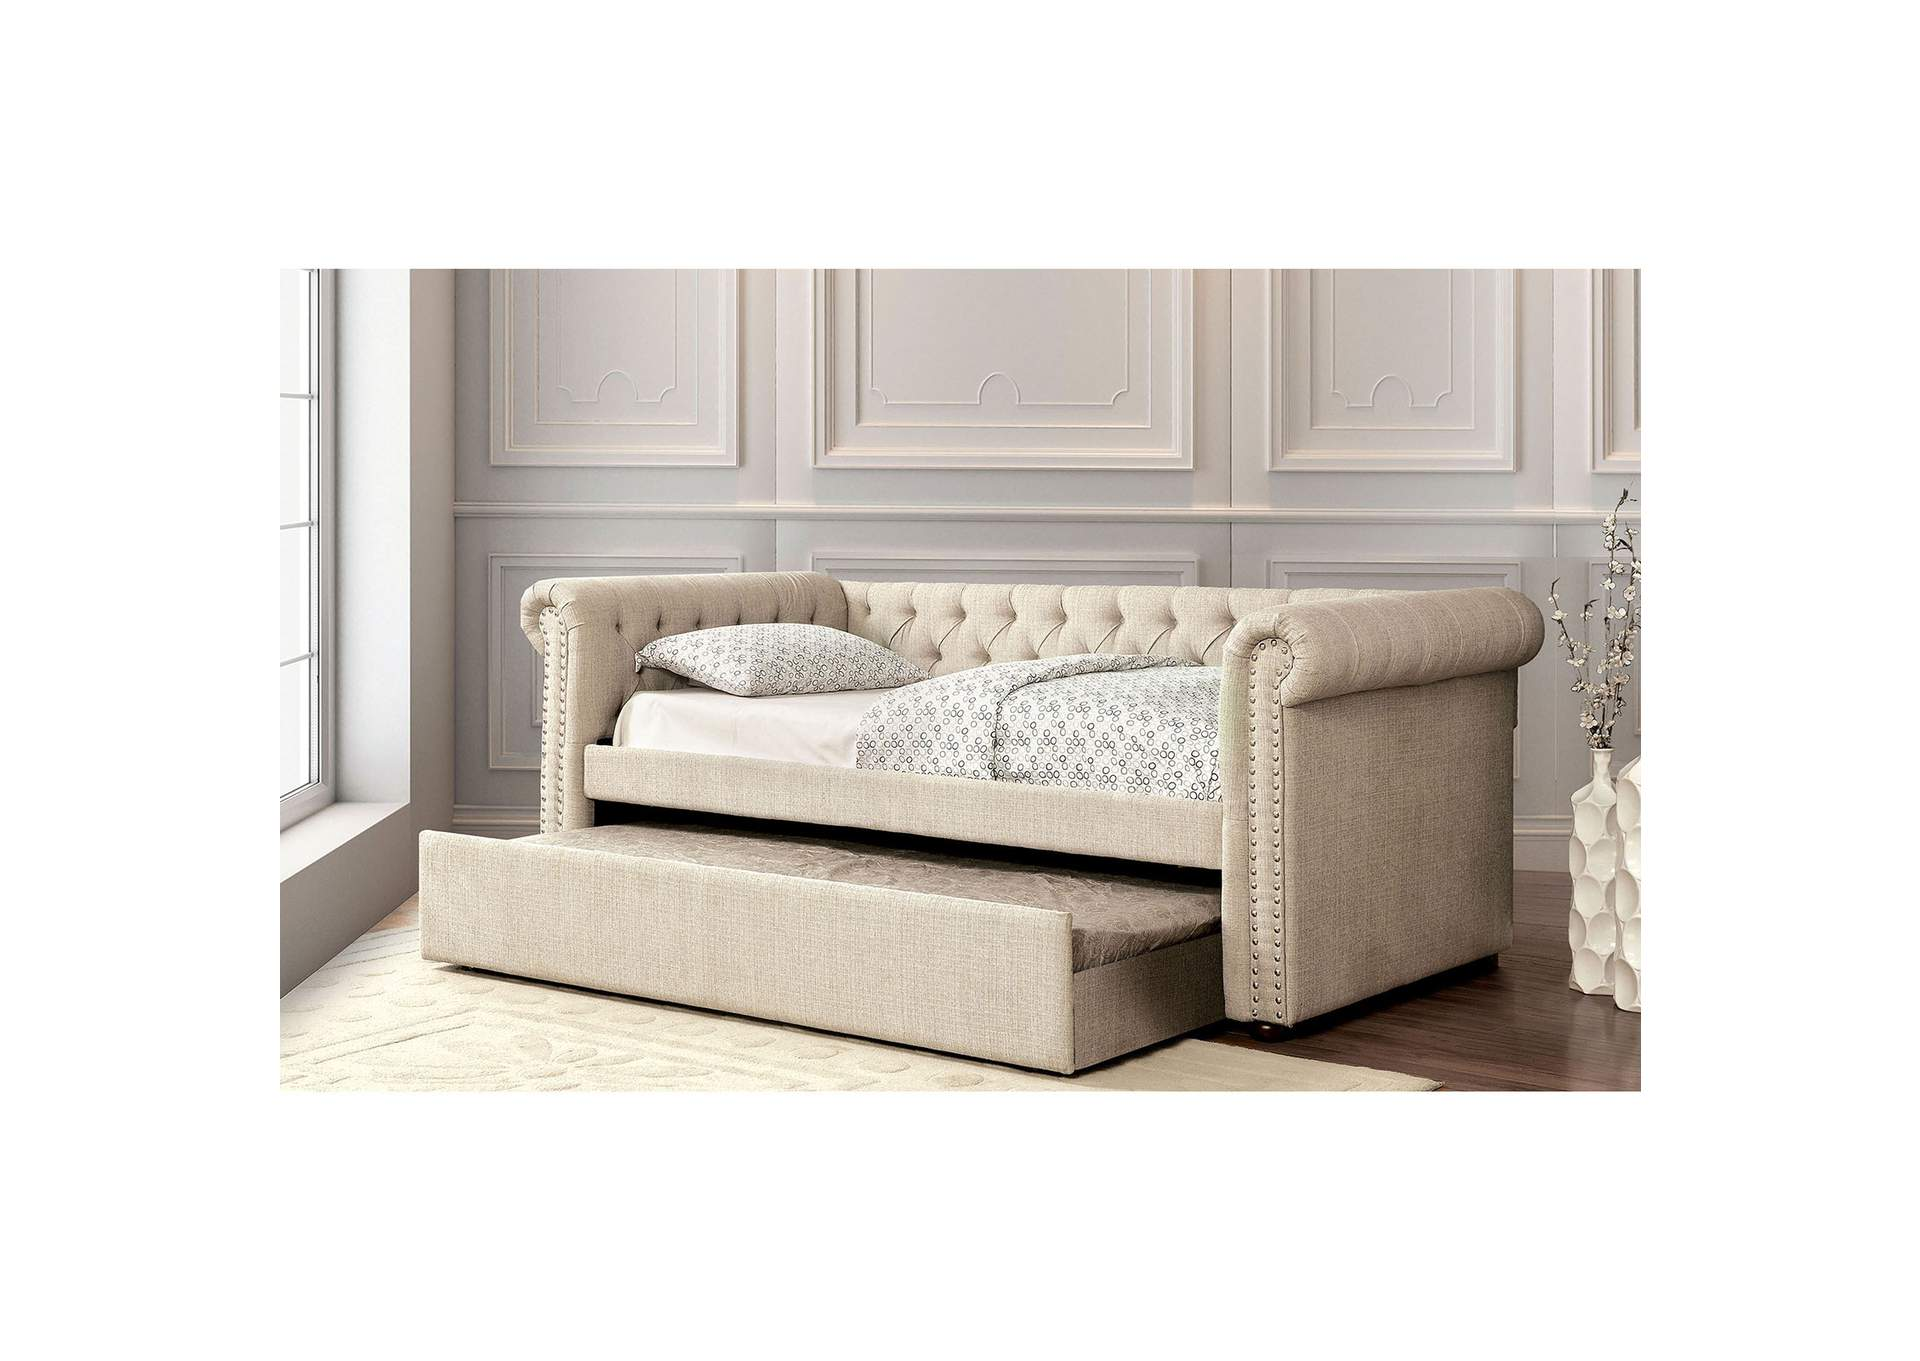 Leanna Beige Daybed w/Trundle,Furniture of America